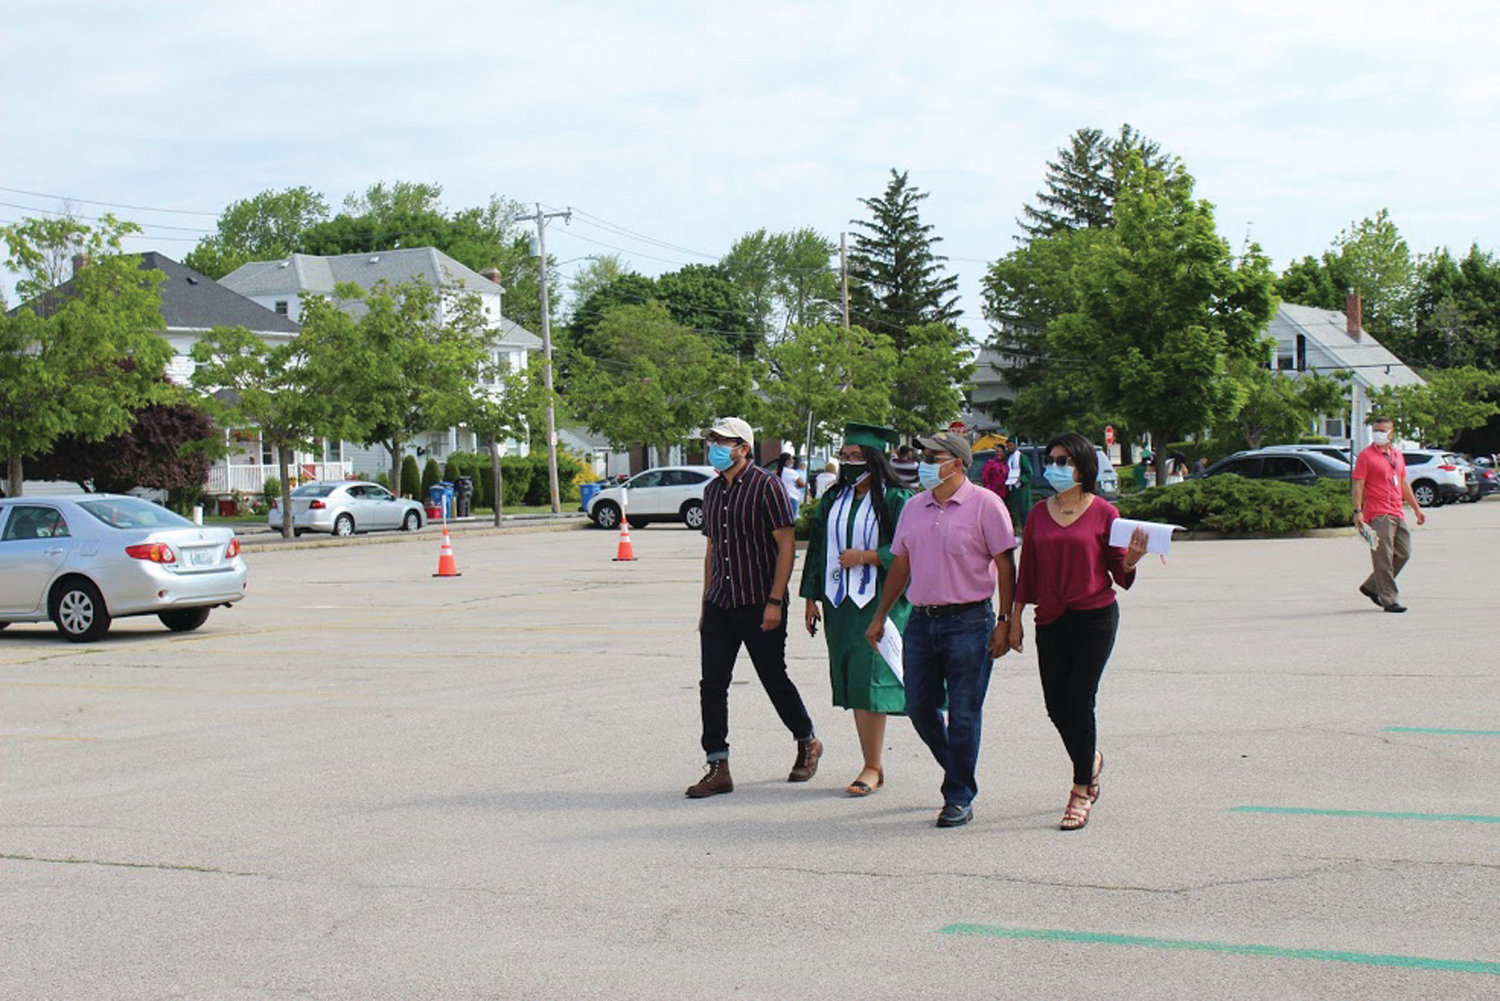 WELCOME BACK: Families arrived on campus beginning on June 3, under sunny skies and greeted by staff from the Cranston Public Schools. All graduates and attendees were required to follow all health and safety protocols for COVID-19.